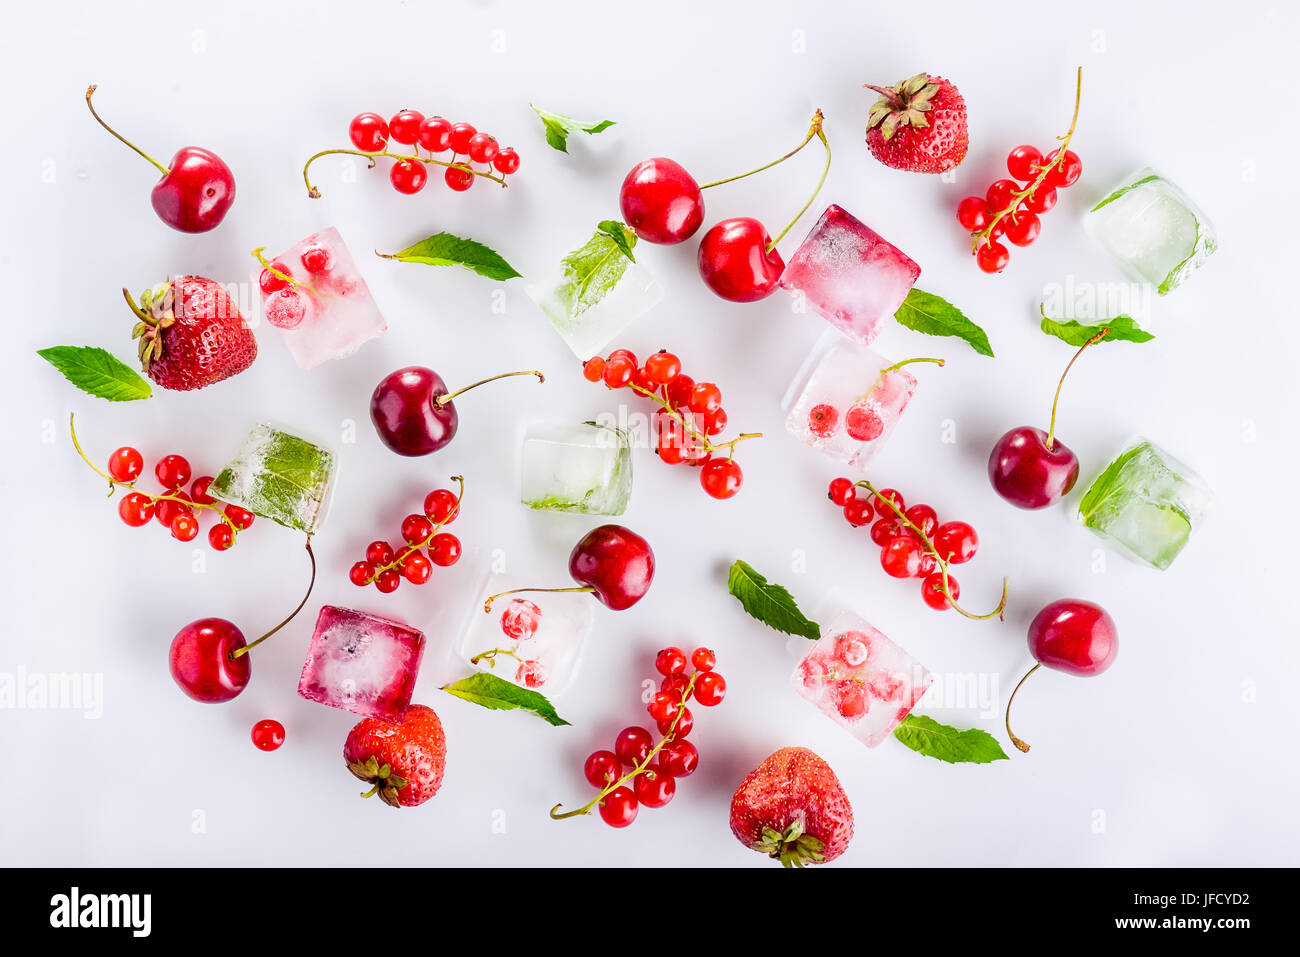 Top view ice cubes with fresh berries among not frozen cherry, strawberry and mint leafs on the white background. - Stock Image